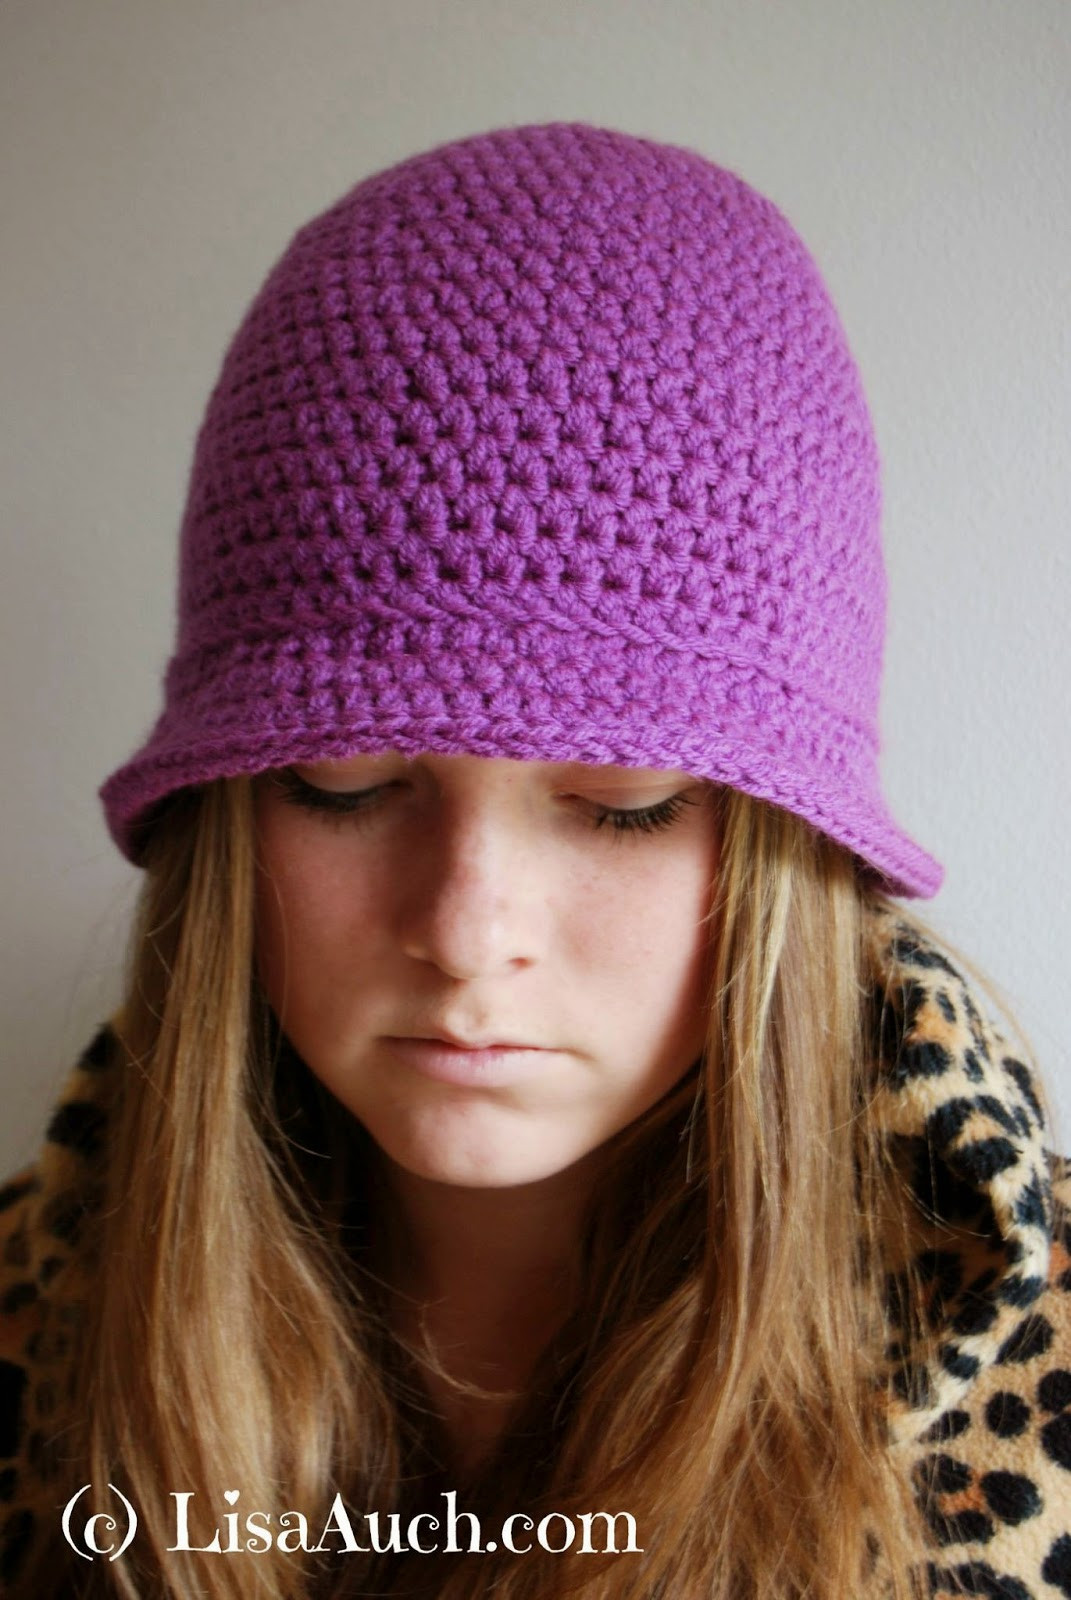 Luxury Crochet Hats La S Free Patterns Crochet Hat for Girl Of Amazing 41 Pictures Crochet Hat for Girl